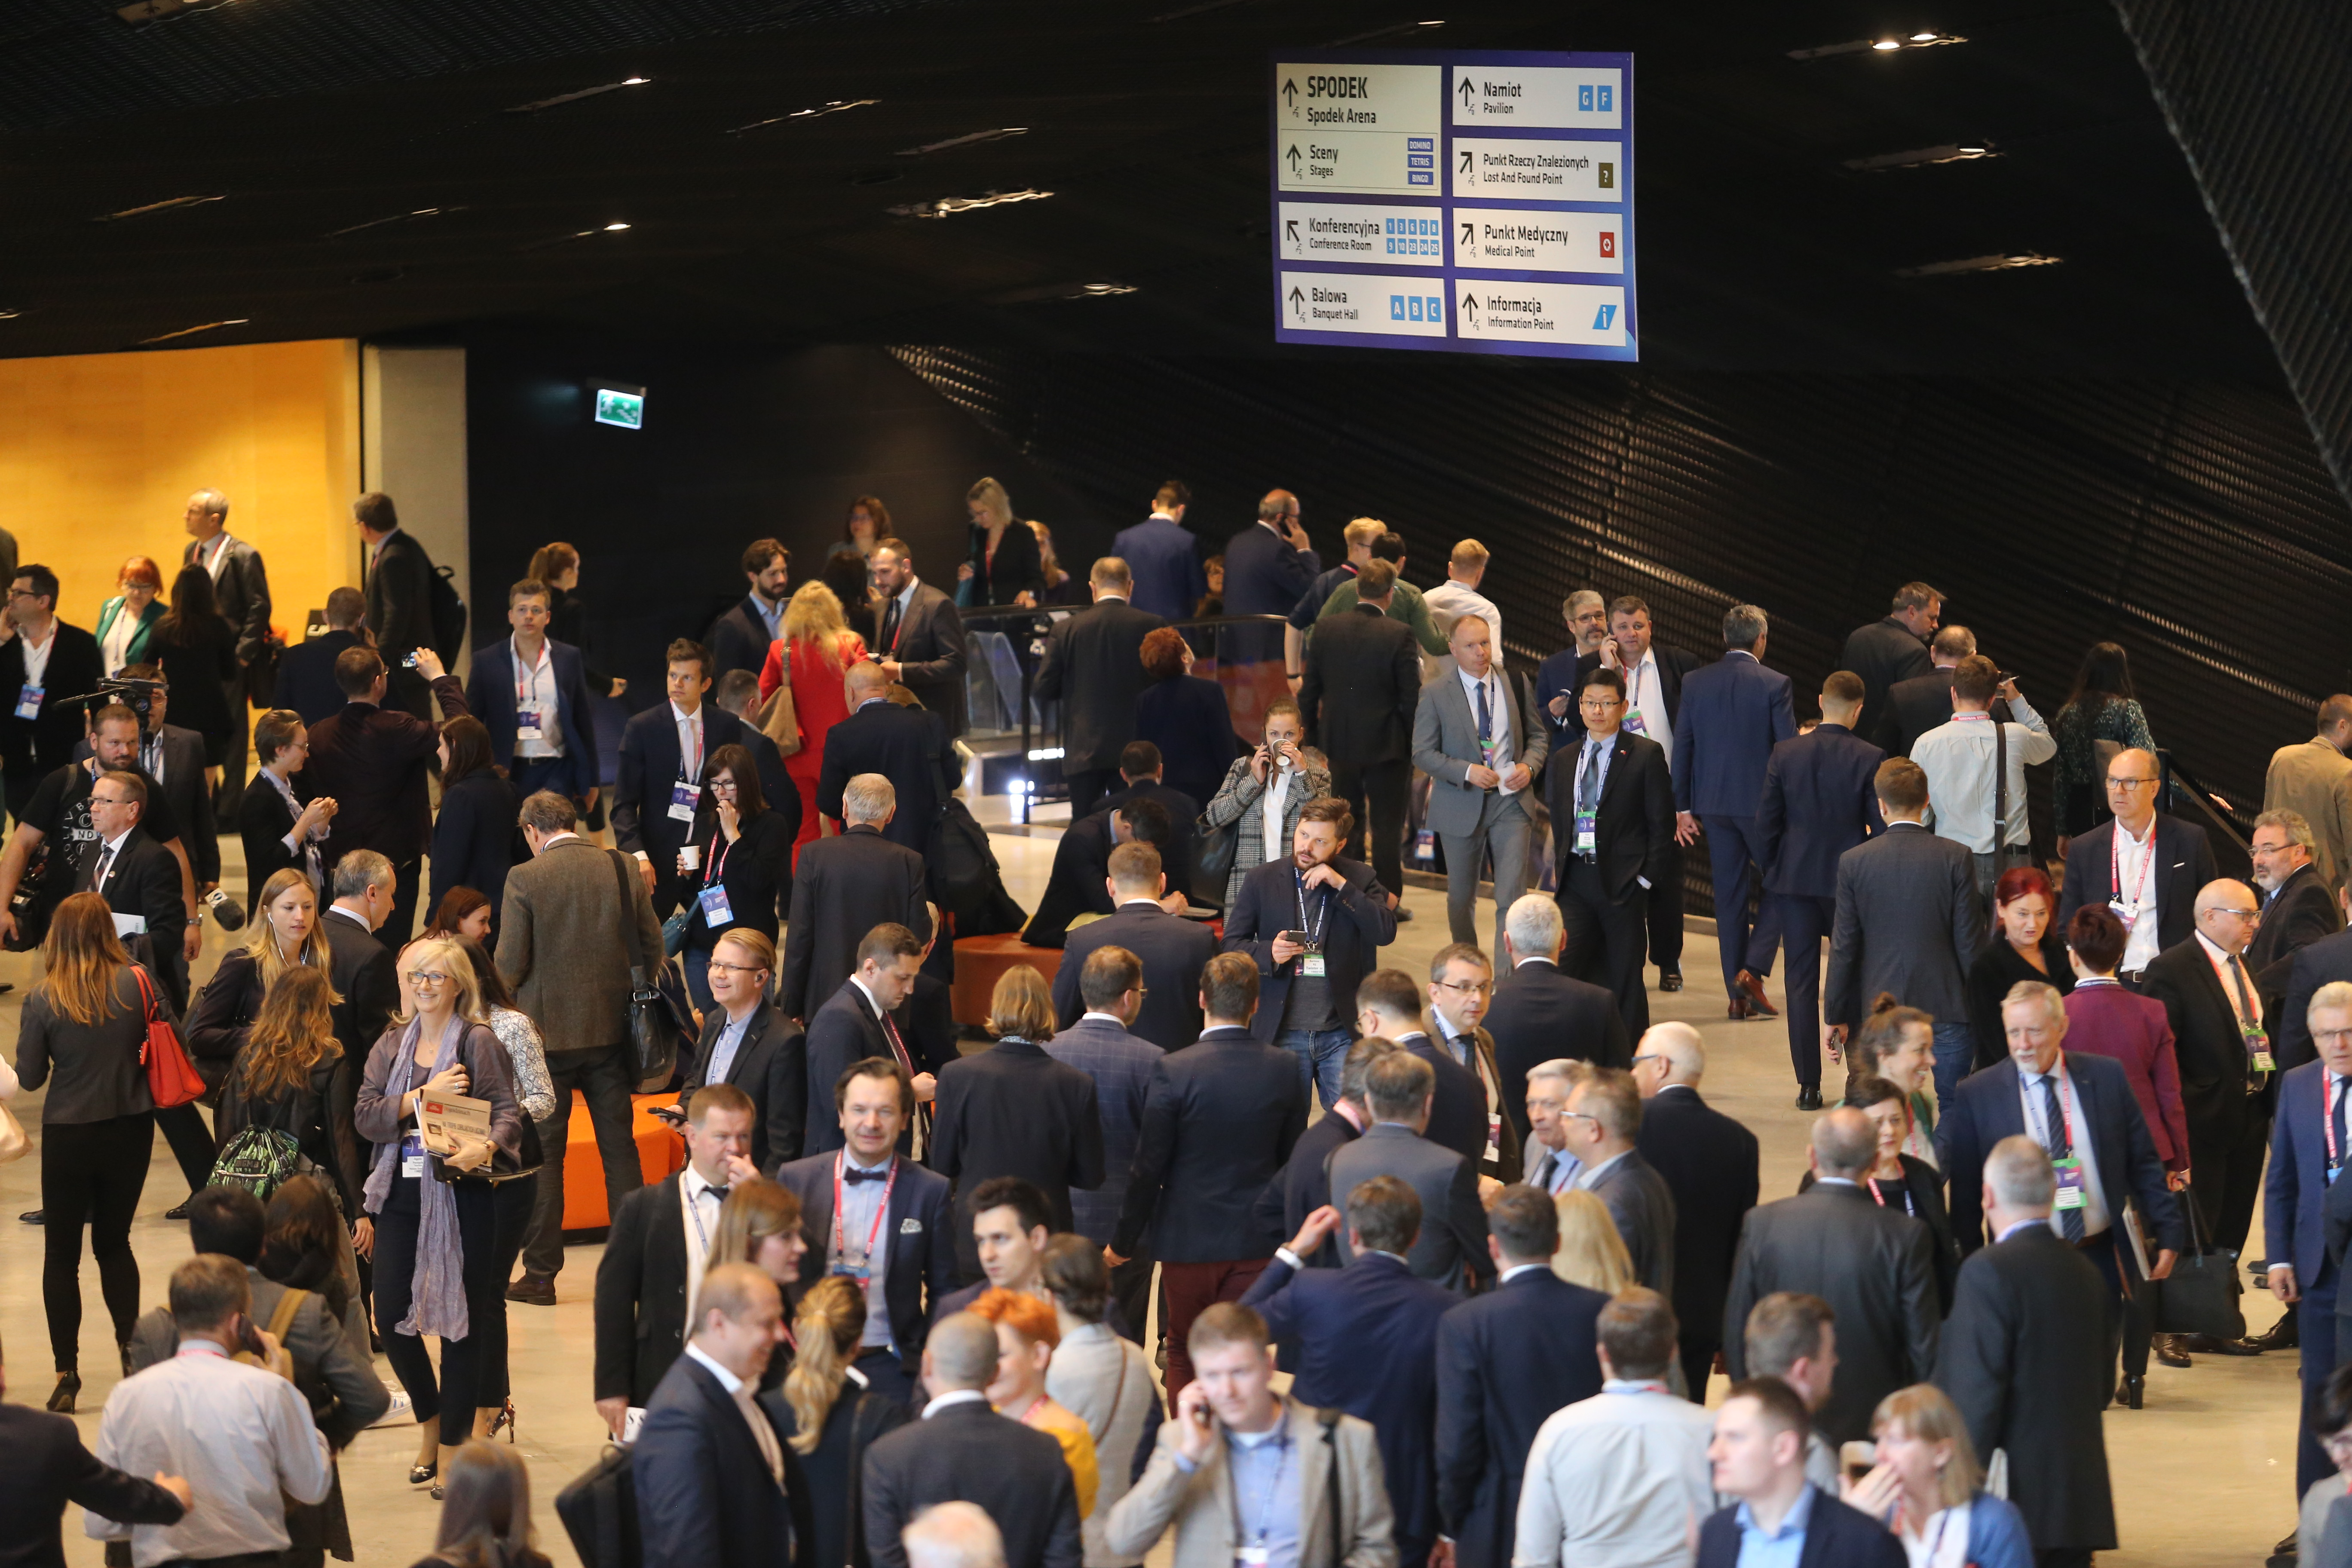 A roundup of the European Economic Congress in Katowice